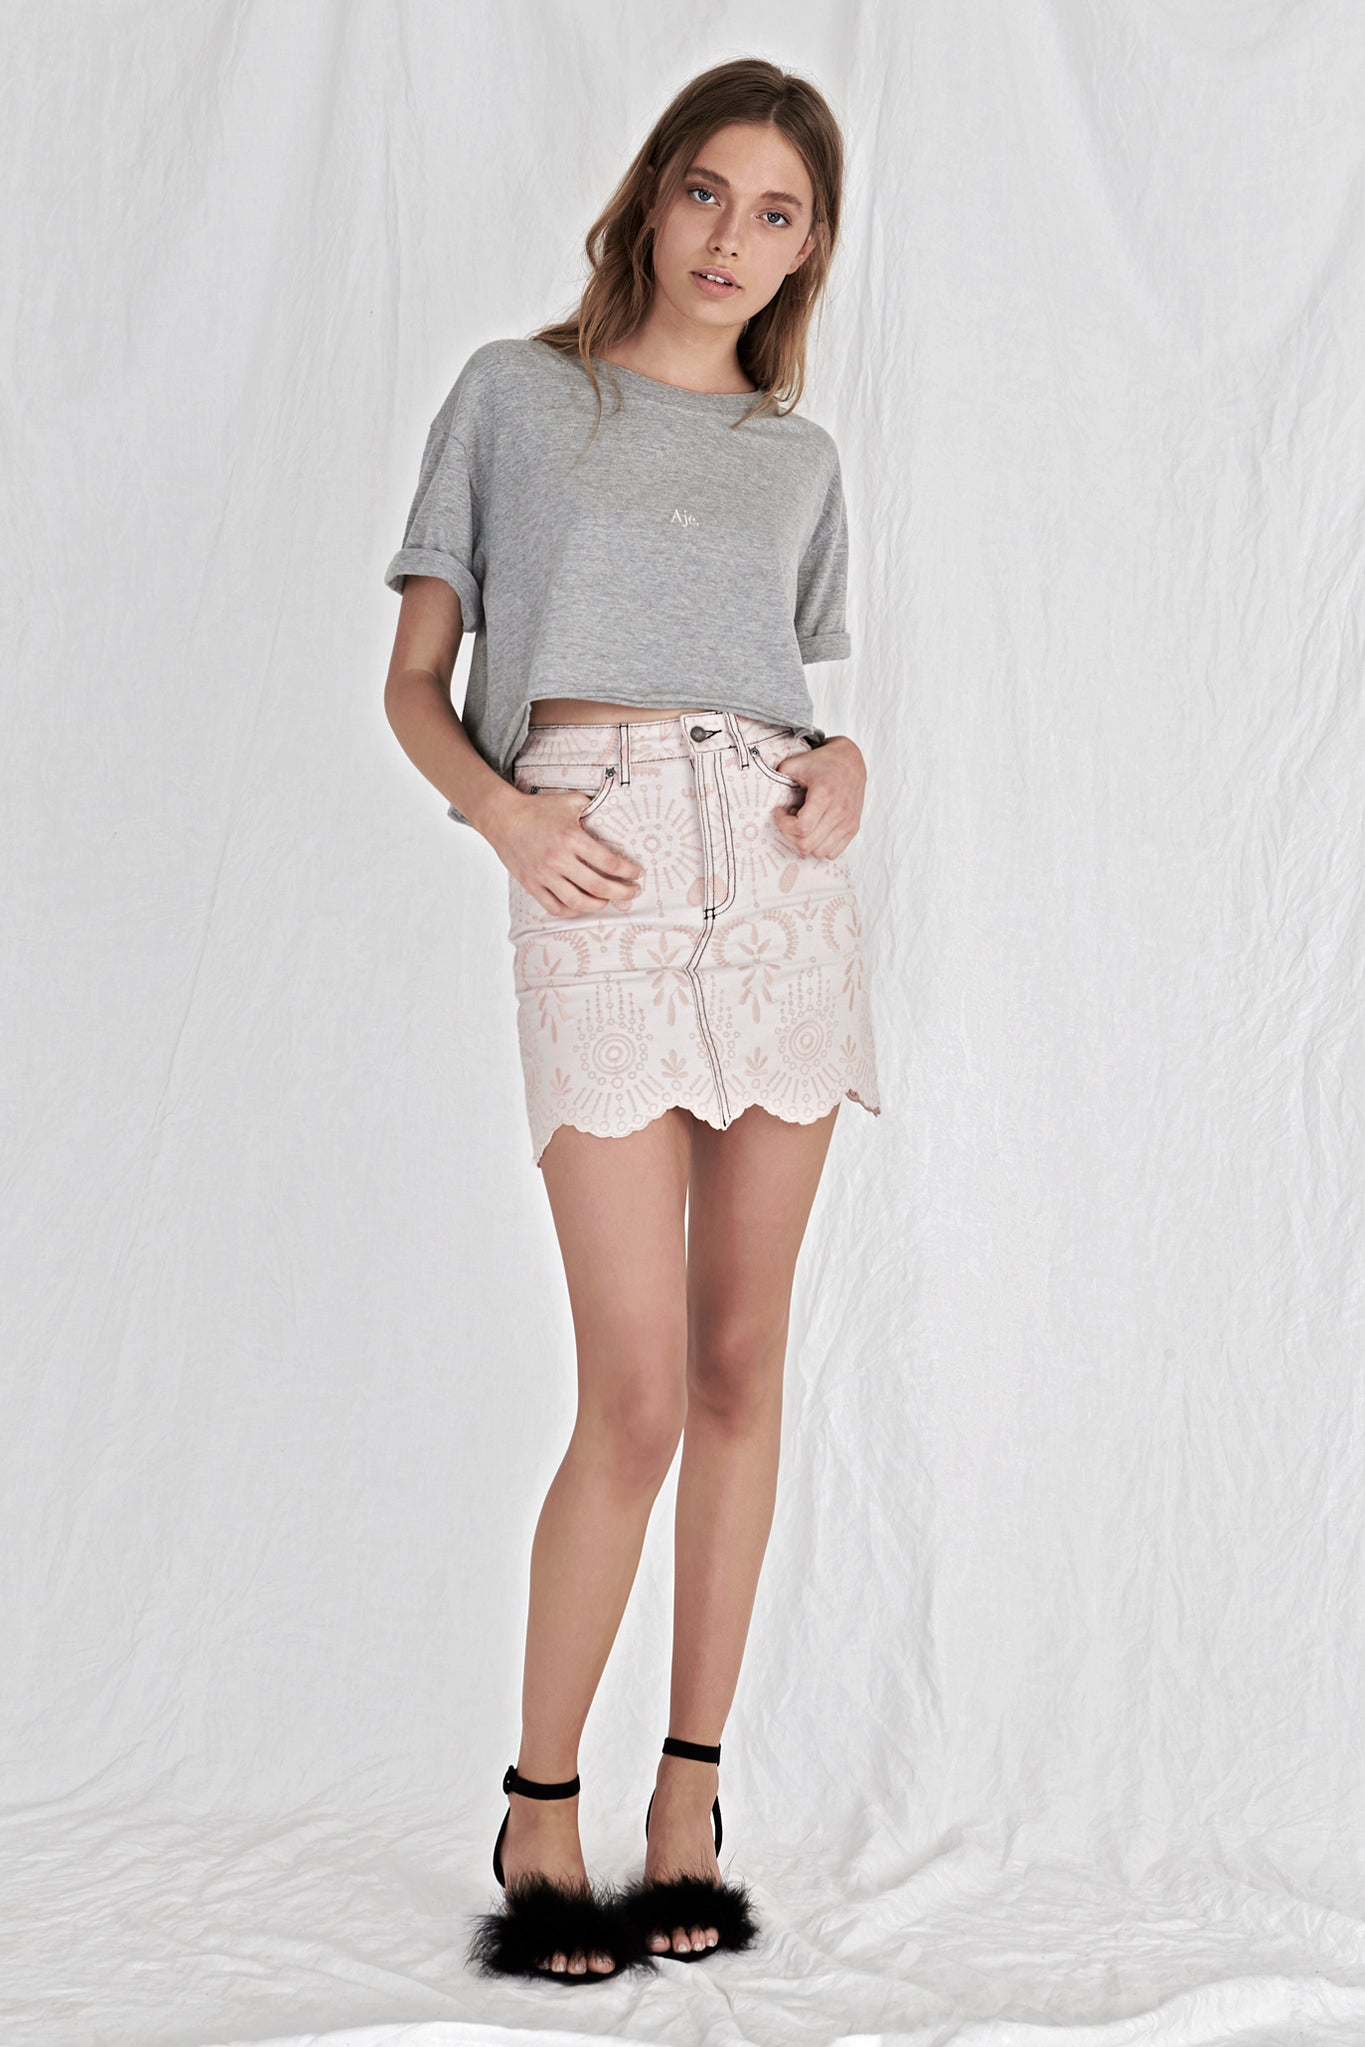 Aje Cropped Tee Outfit View